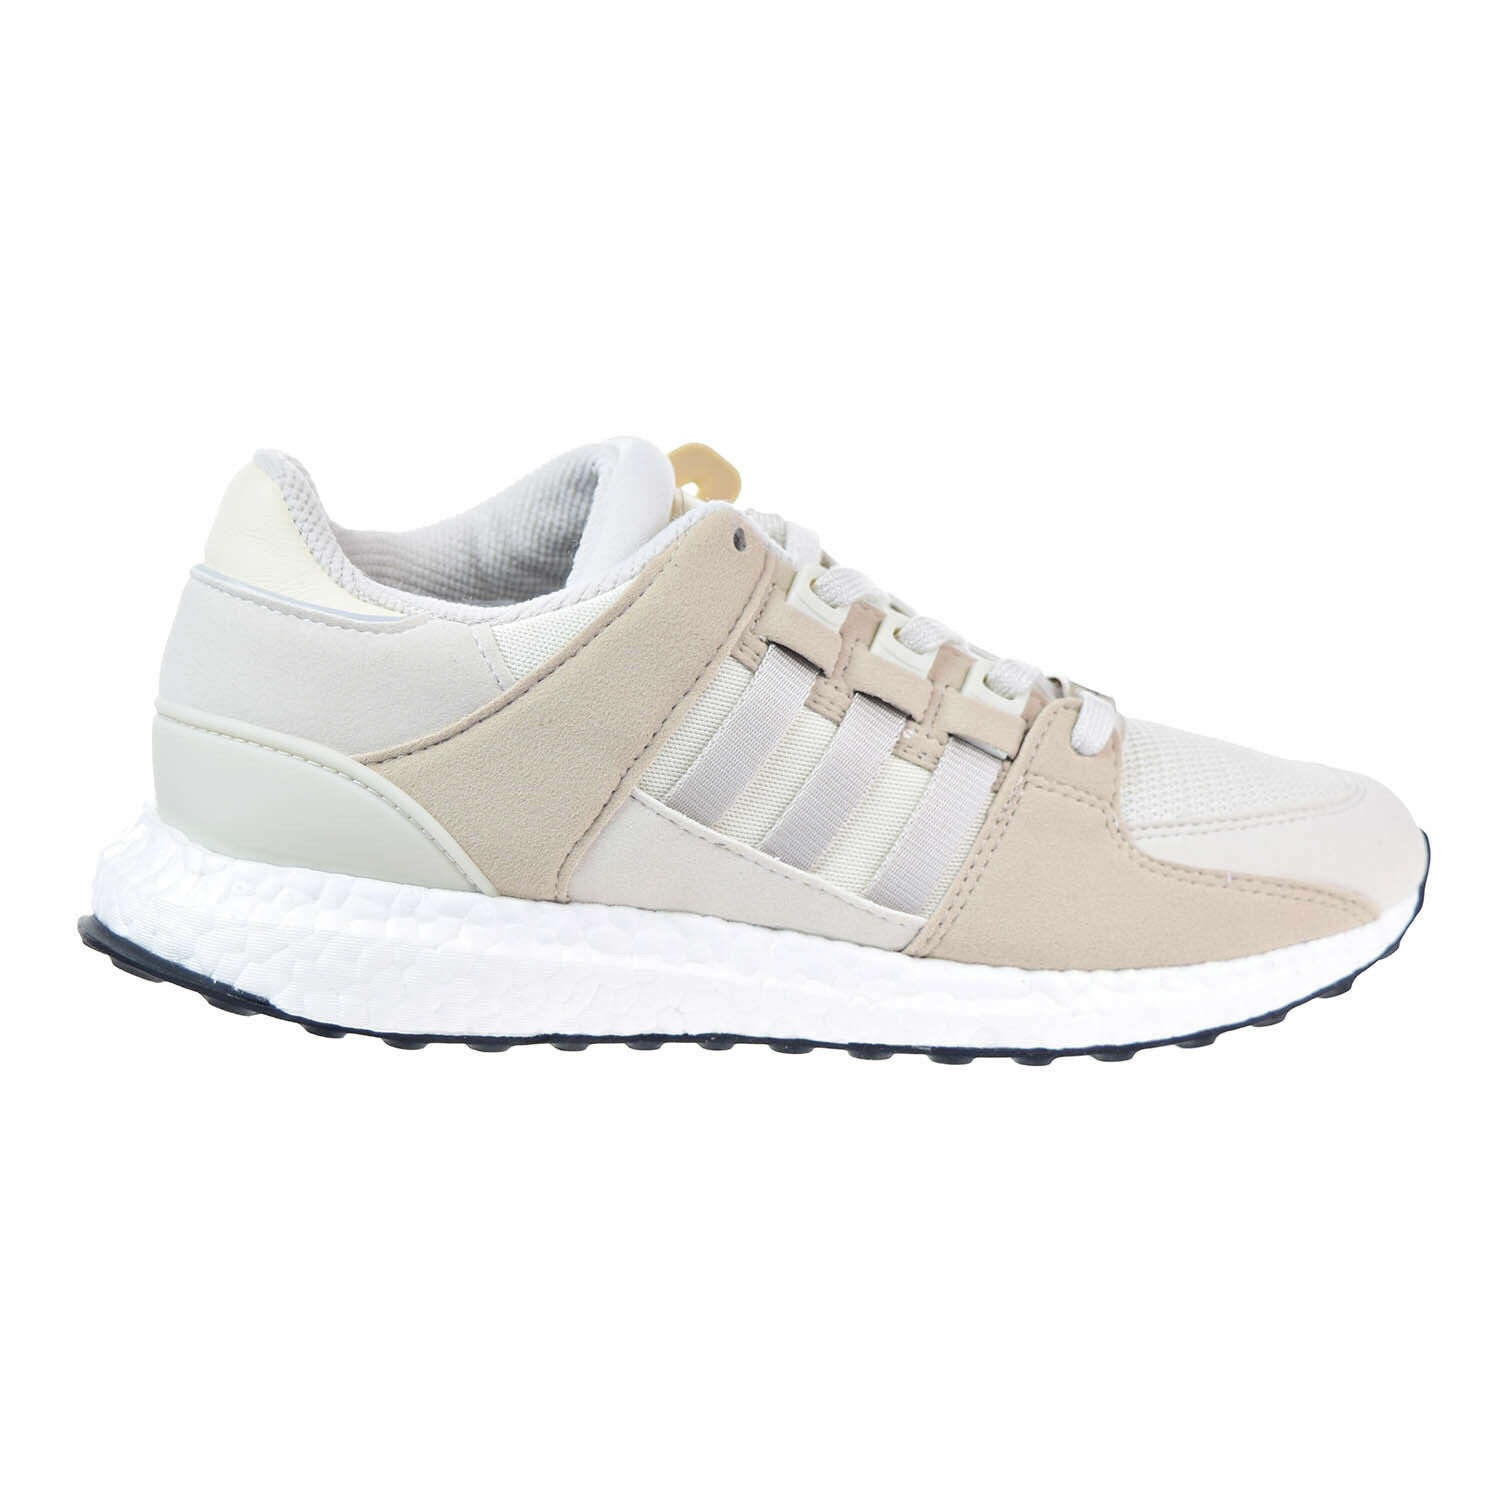 Adidas EQT Support Ultra Men's shoes Cream White bb1239